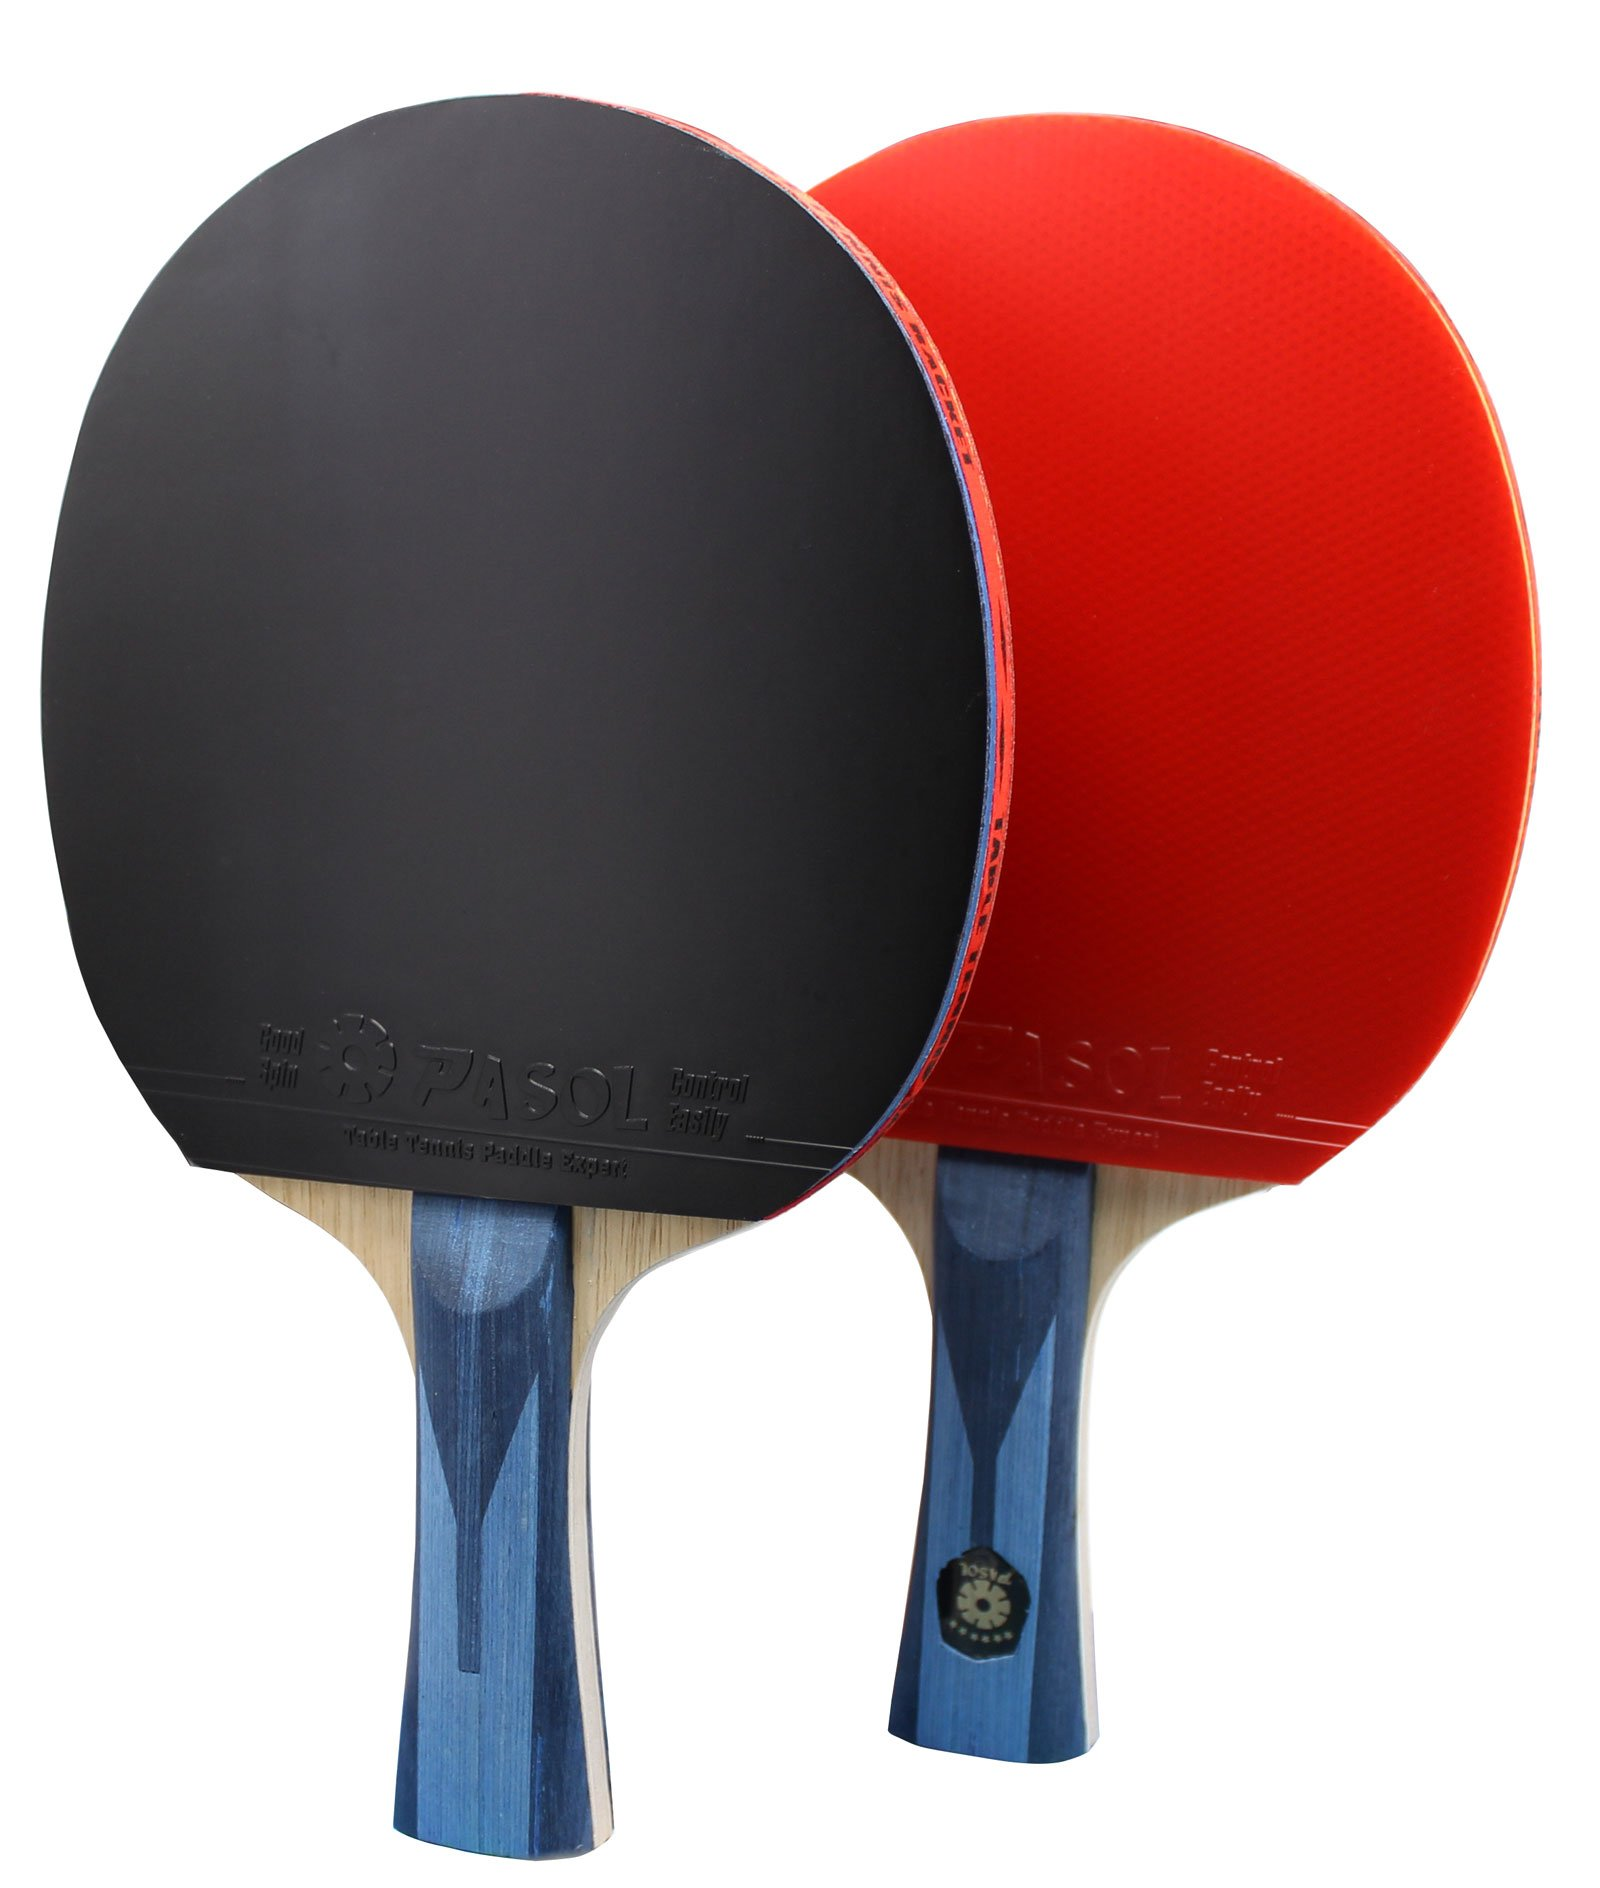 2- Player PASOL 6 Star Superior Ping Pong Paddles - Great Professional Tournament Table Tennis Racket with Carry Bag by PASOL